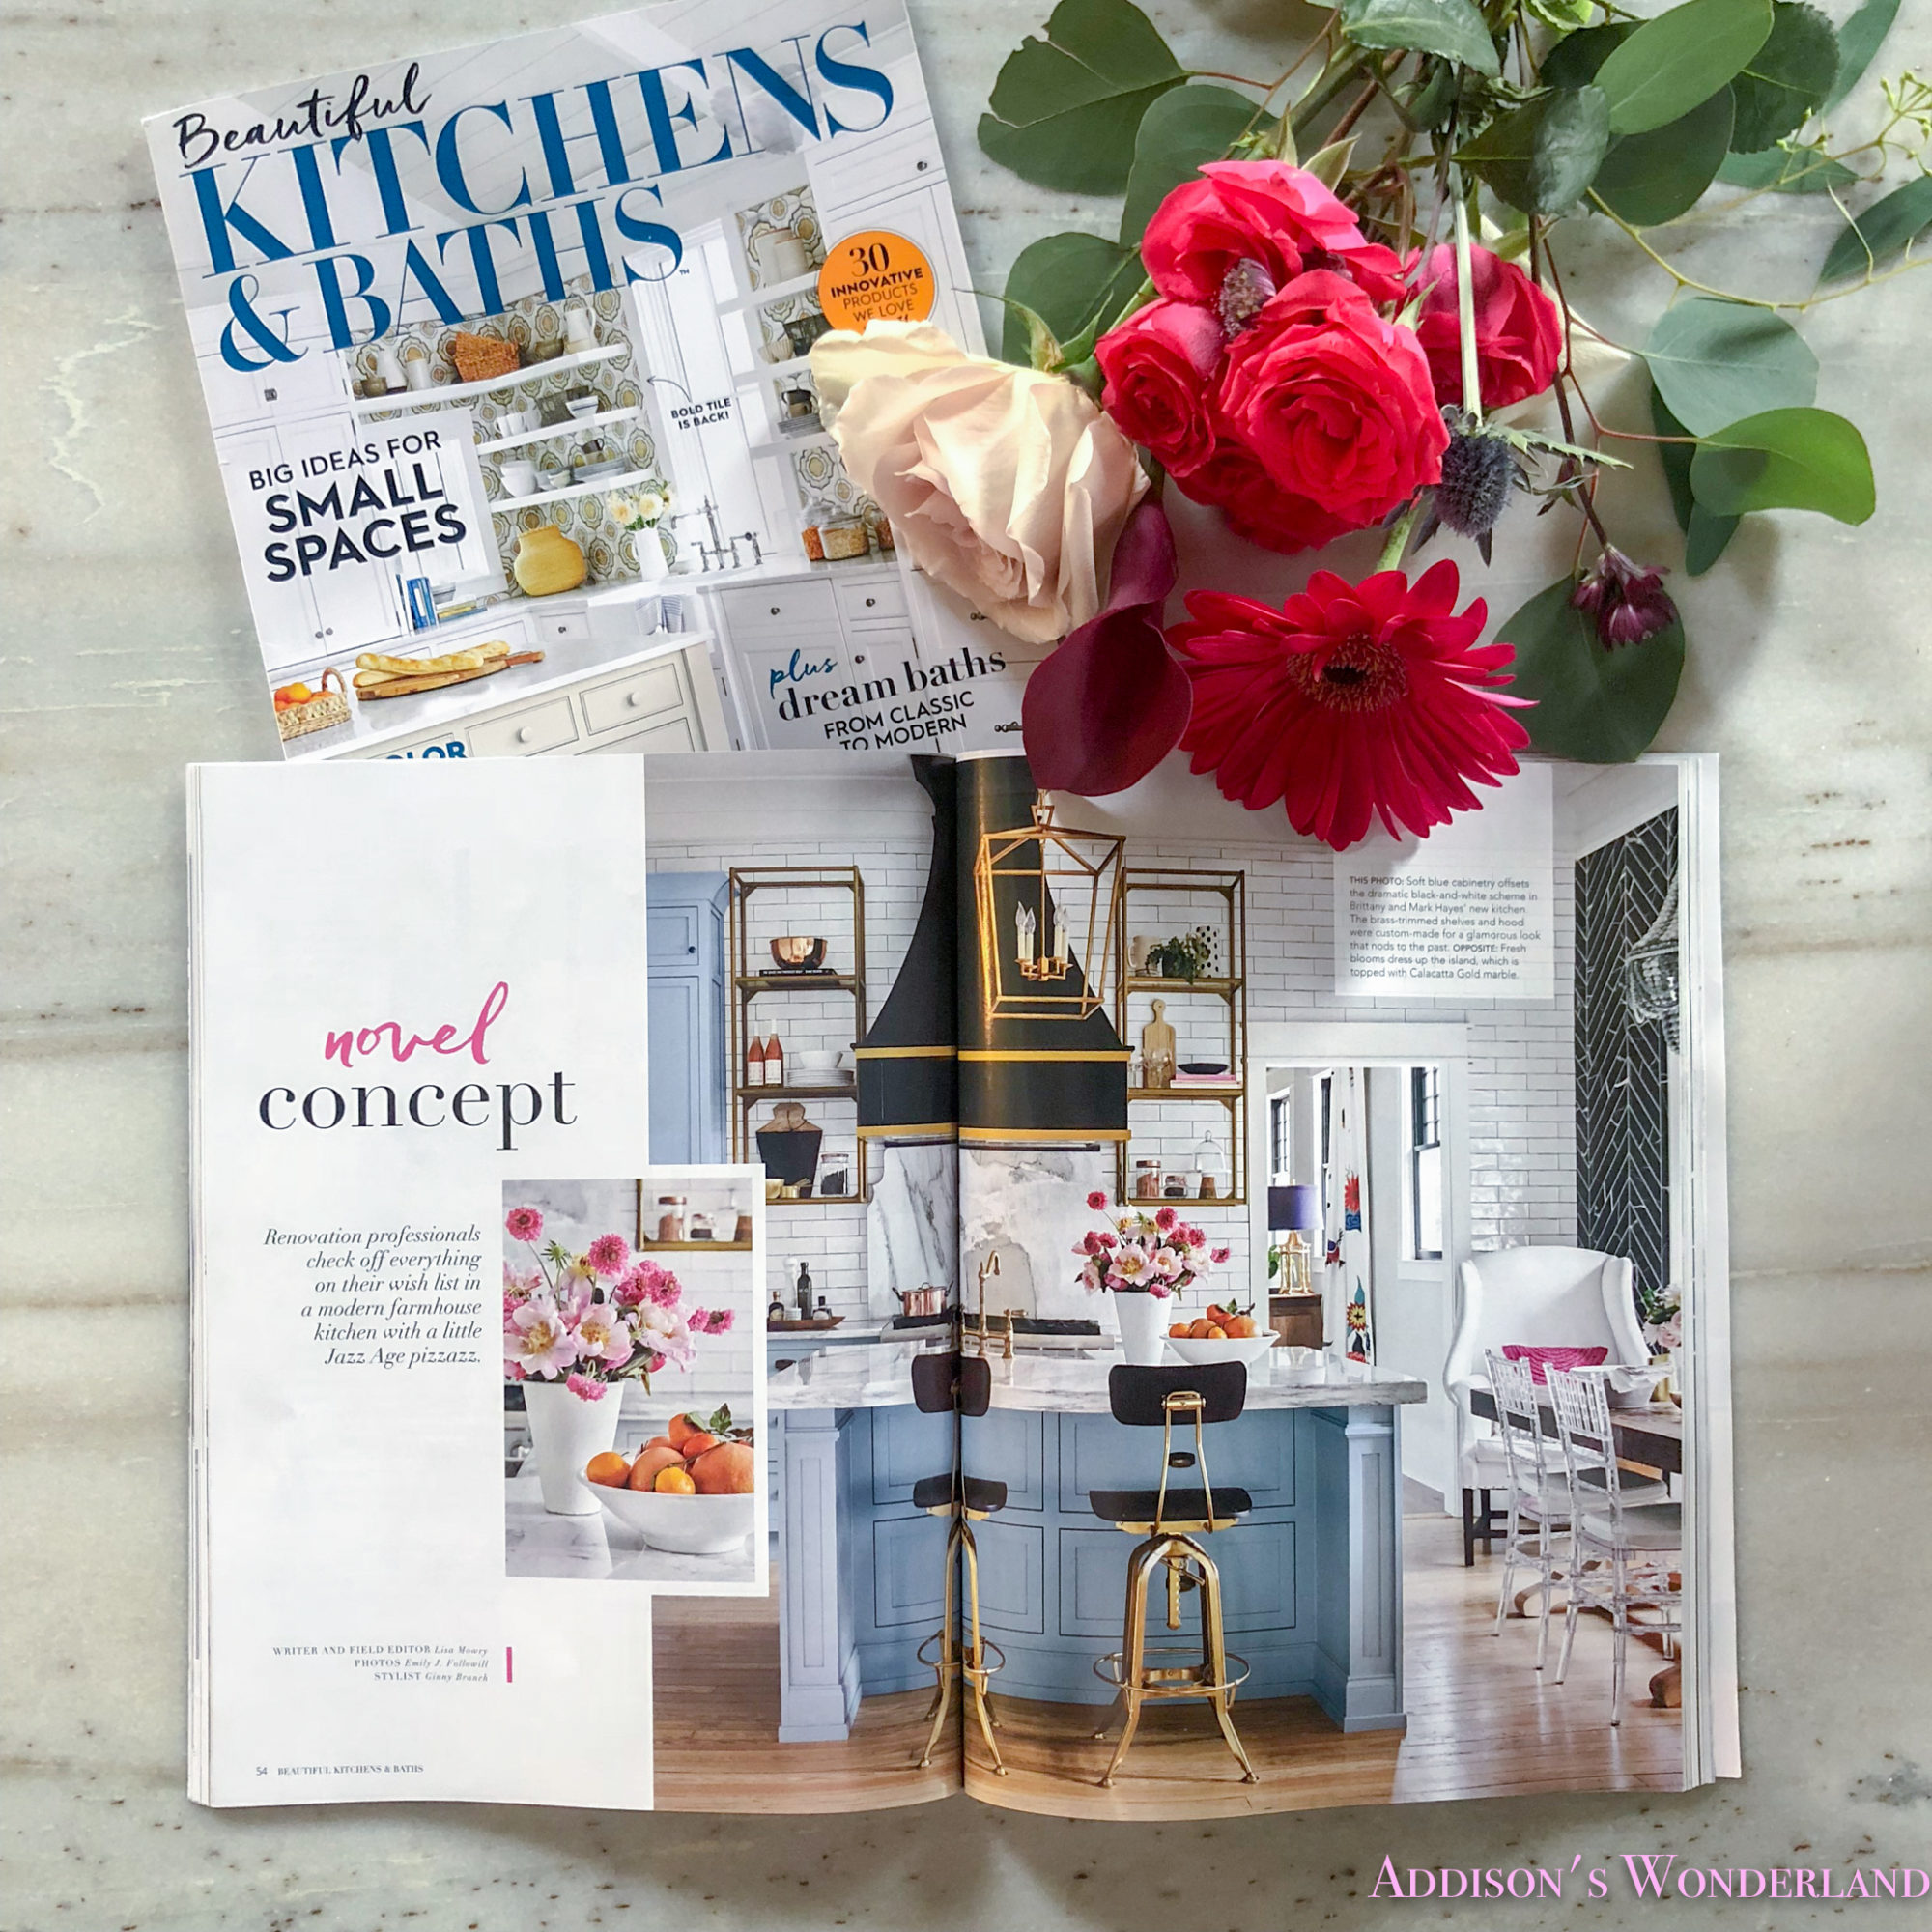 Our Kitchen Feature in Beautiful Kitchens & Baths Magazine ...